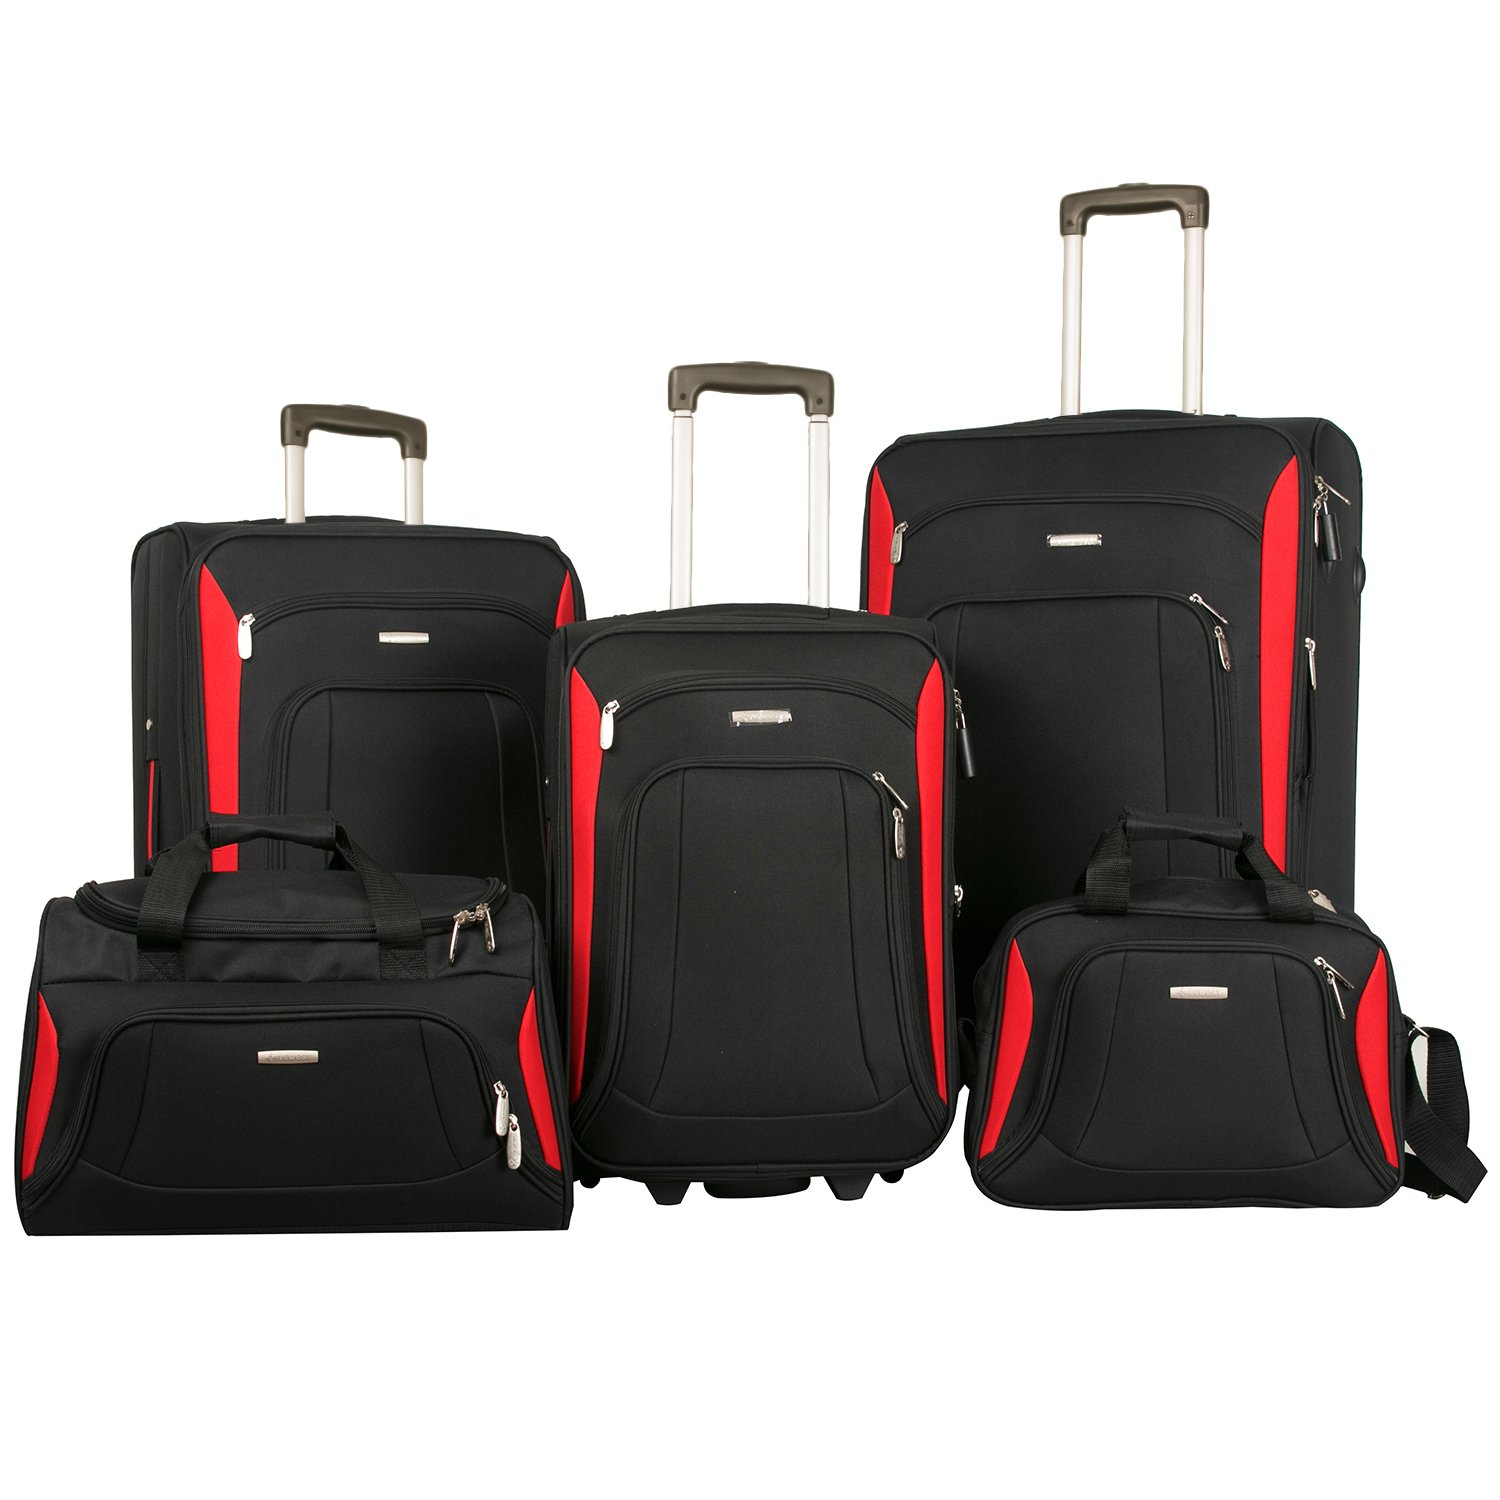 Luggage Sets | Amazon.com